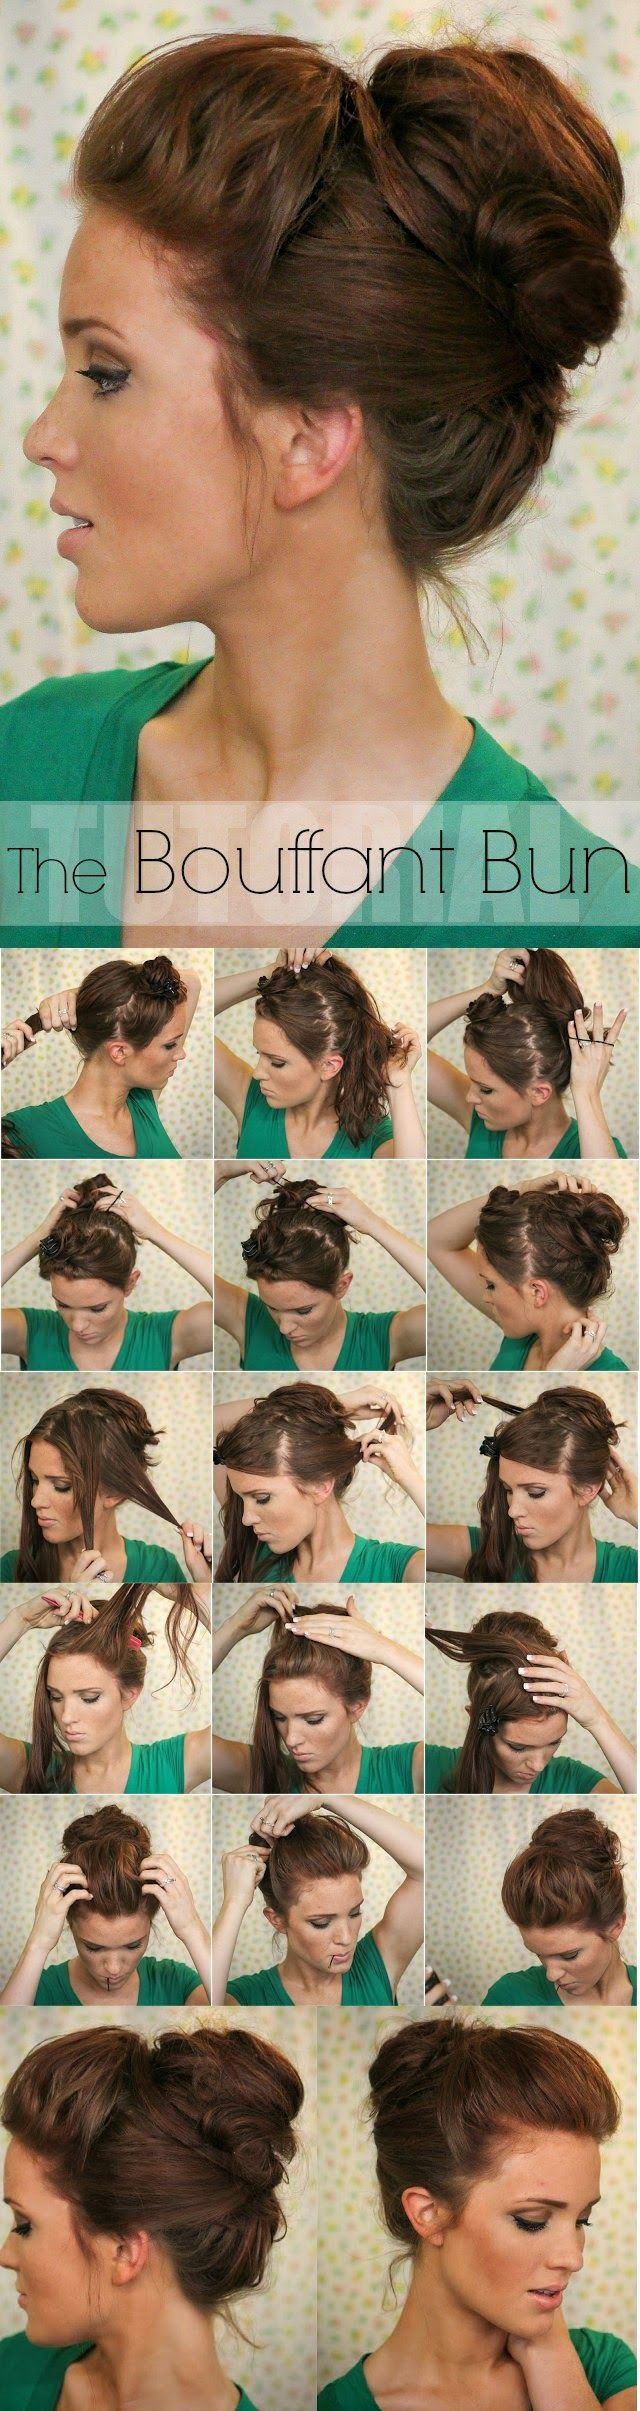 Super cute, but I tried it and couldn't get it to look right on me. Guess I will have to have a professional have a go at this one. #CuteMessyHairstyles